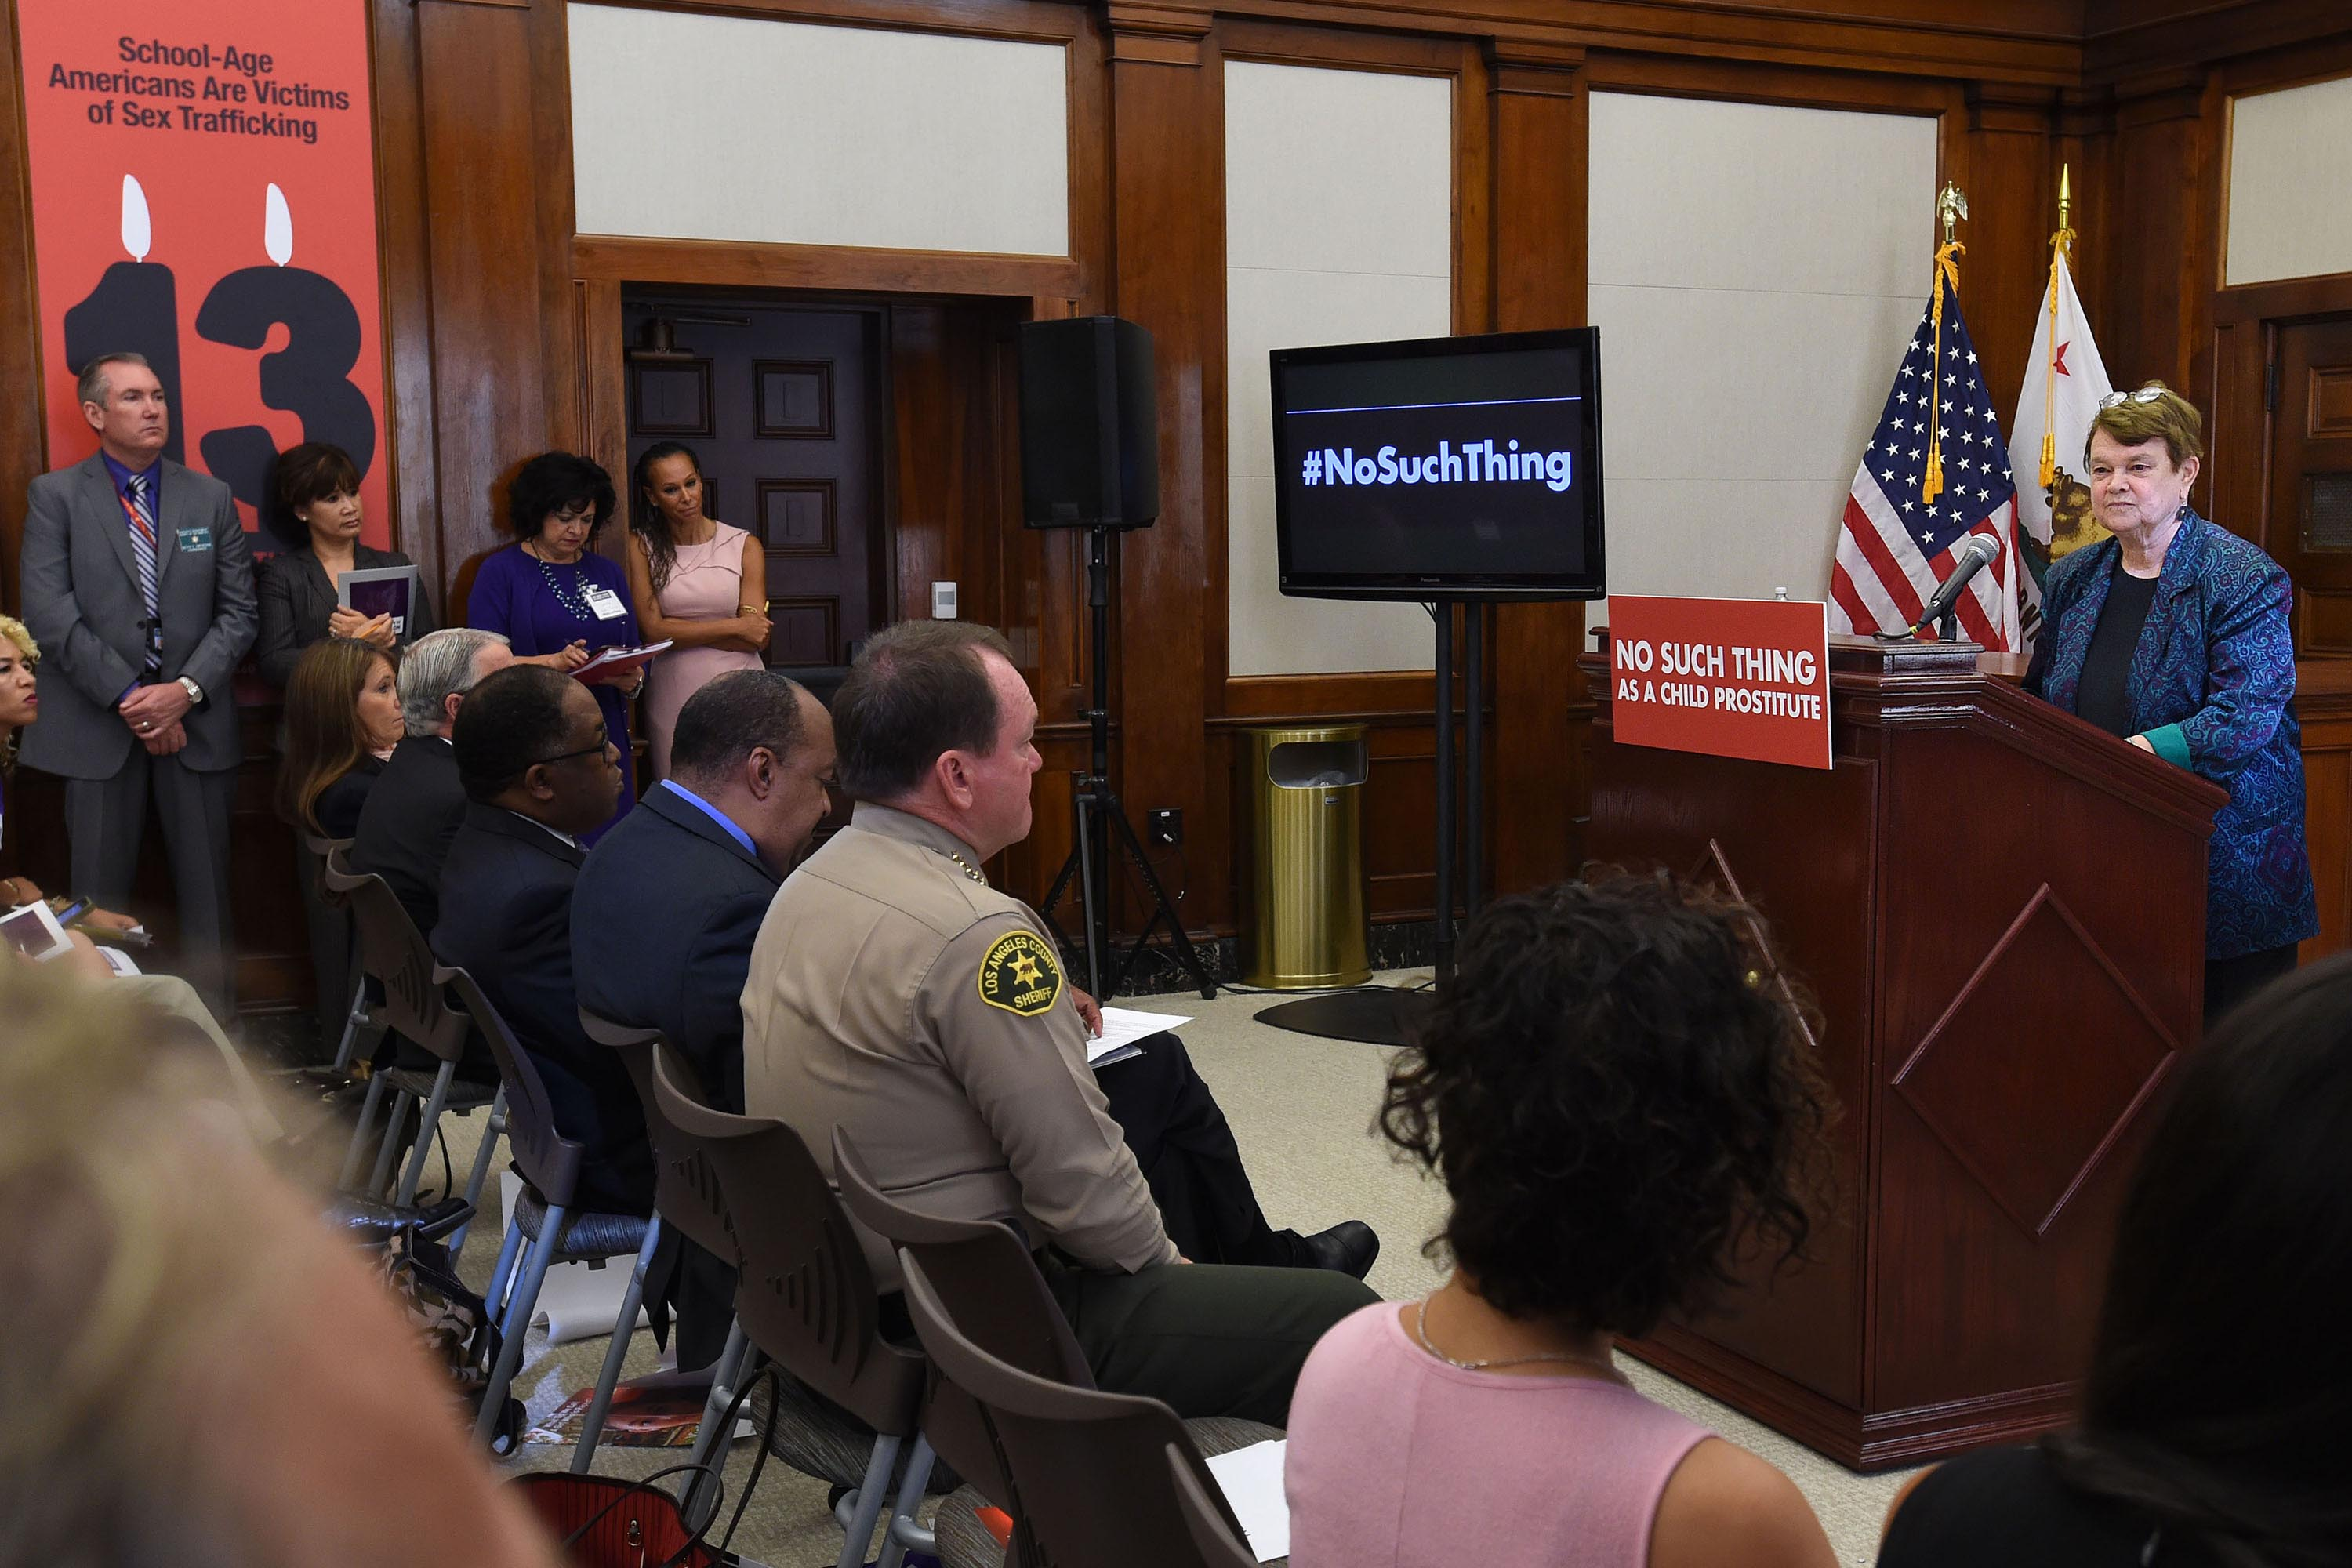 District 3 – Supervisor Sheila Kuehl<br> <b>Oct. 21, 2015 – No such thing as a child prostitute press conference. </b><br> <i>Photo by Mayra Vasquez / Board of Supervisors</i>